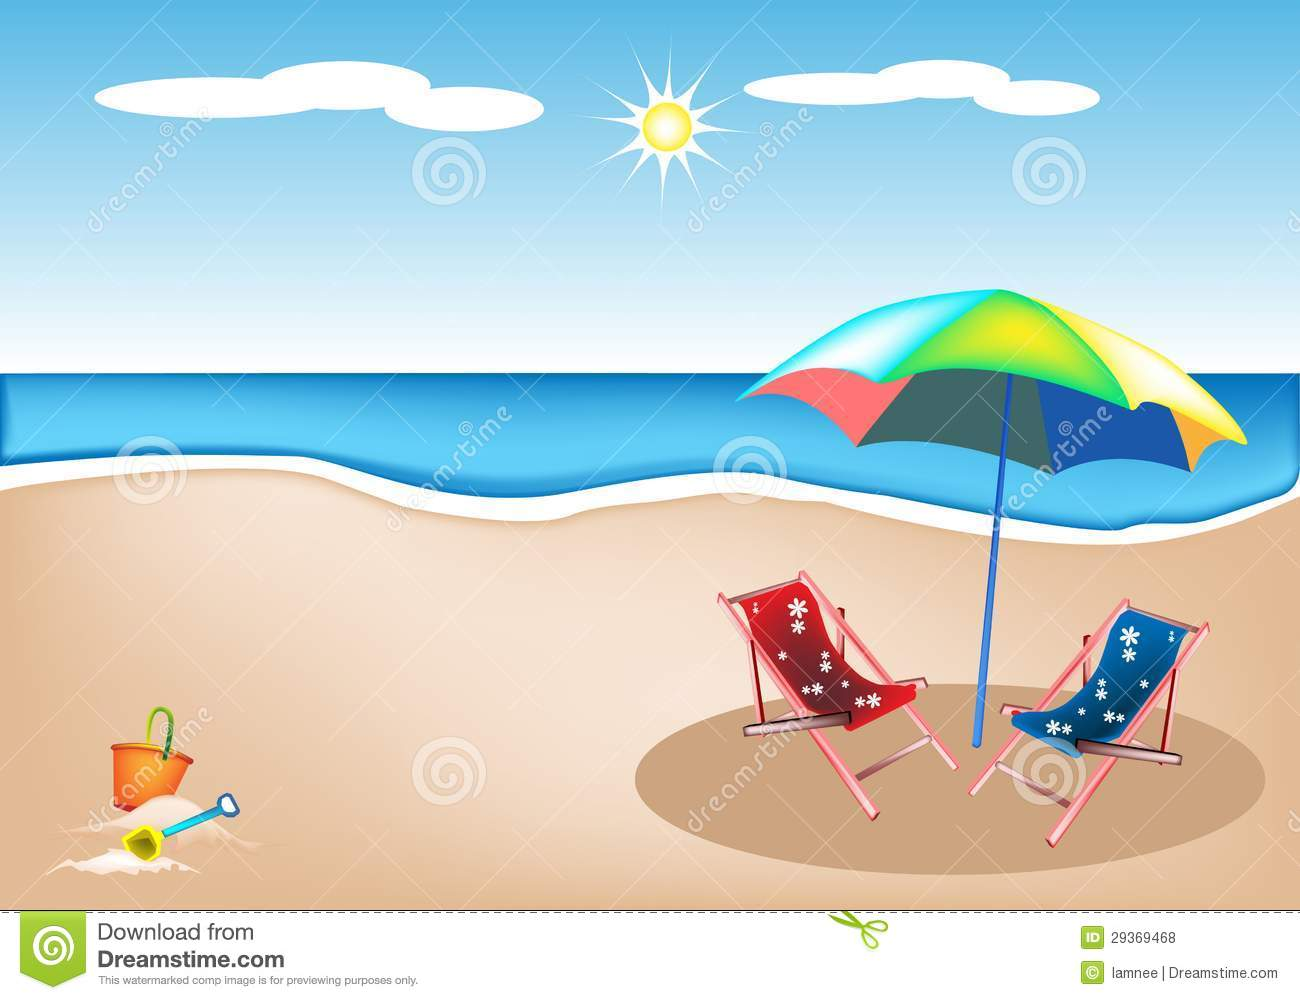 folding chair for less big round bamboo illustration of beach chairs with umbrella and toy royalty free stock photos - image: 29369468